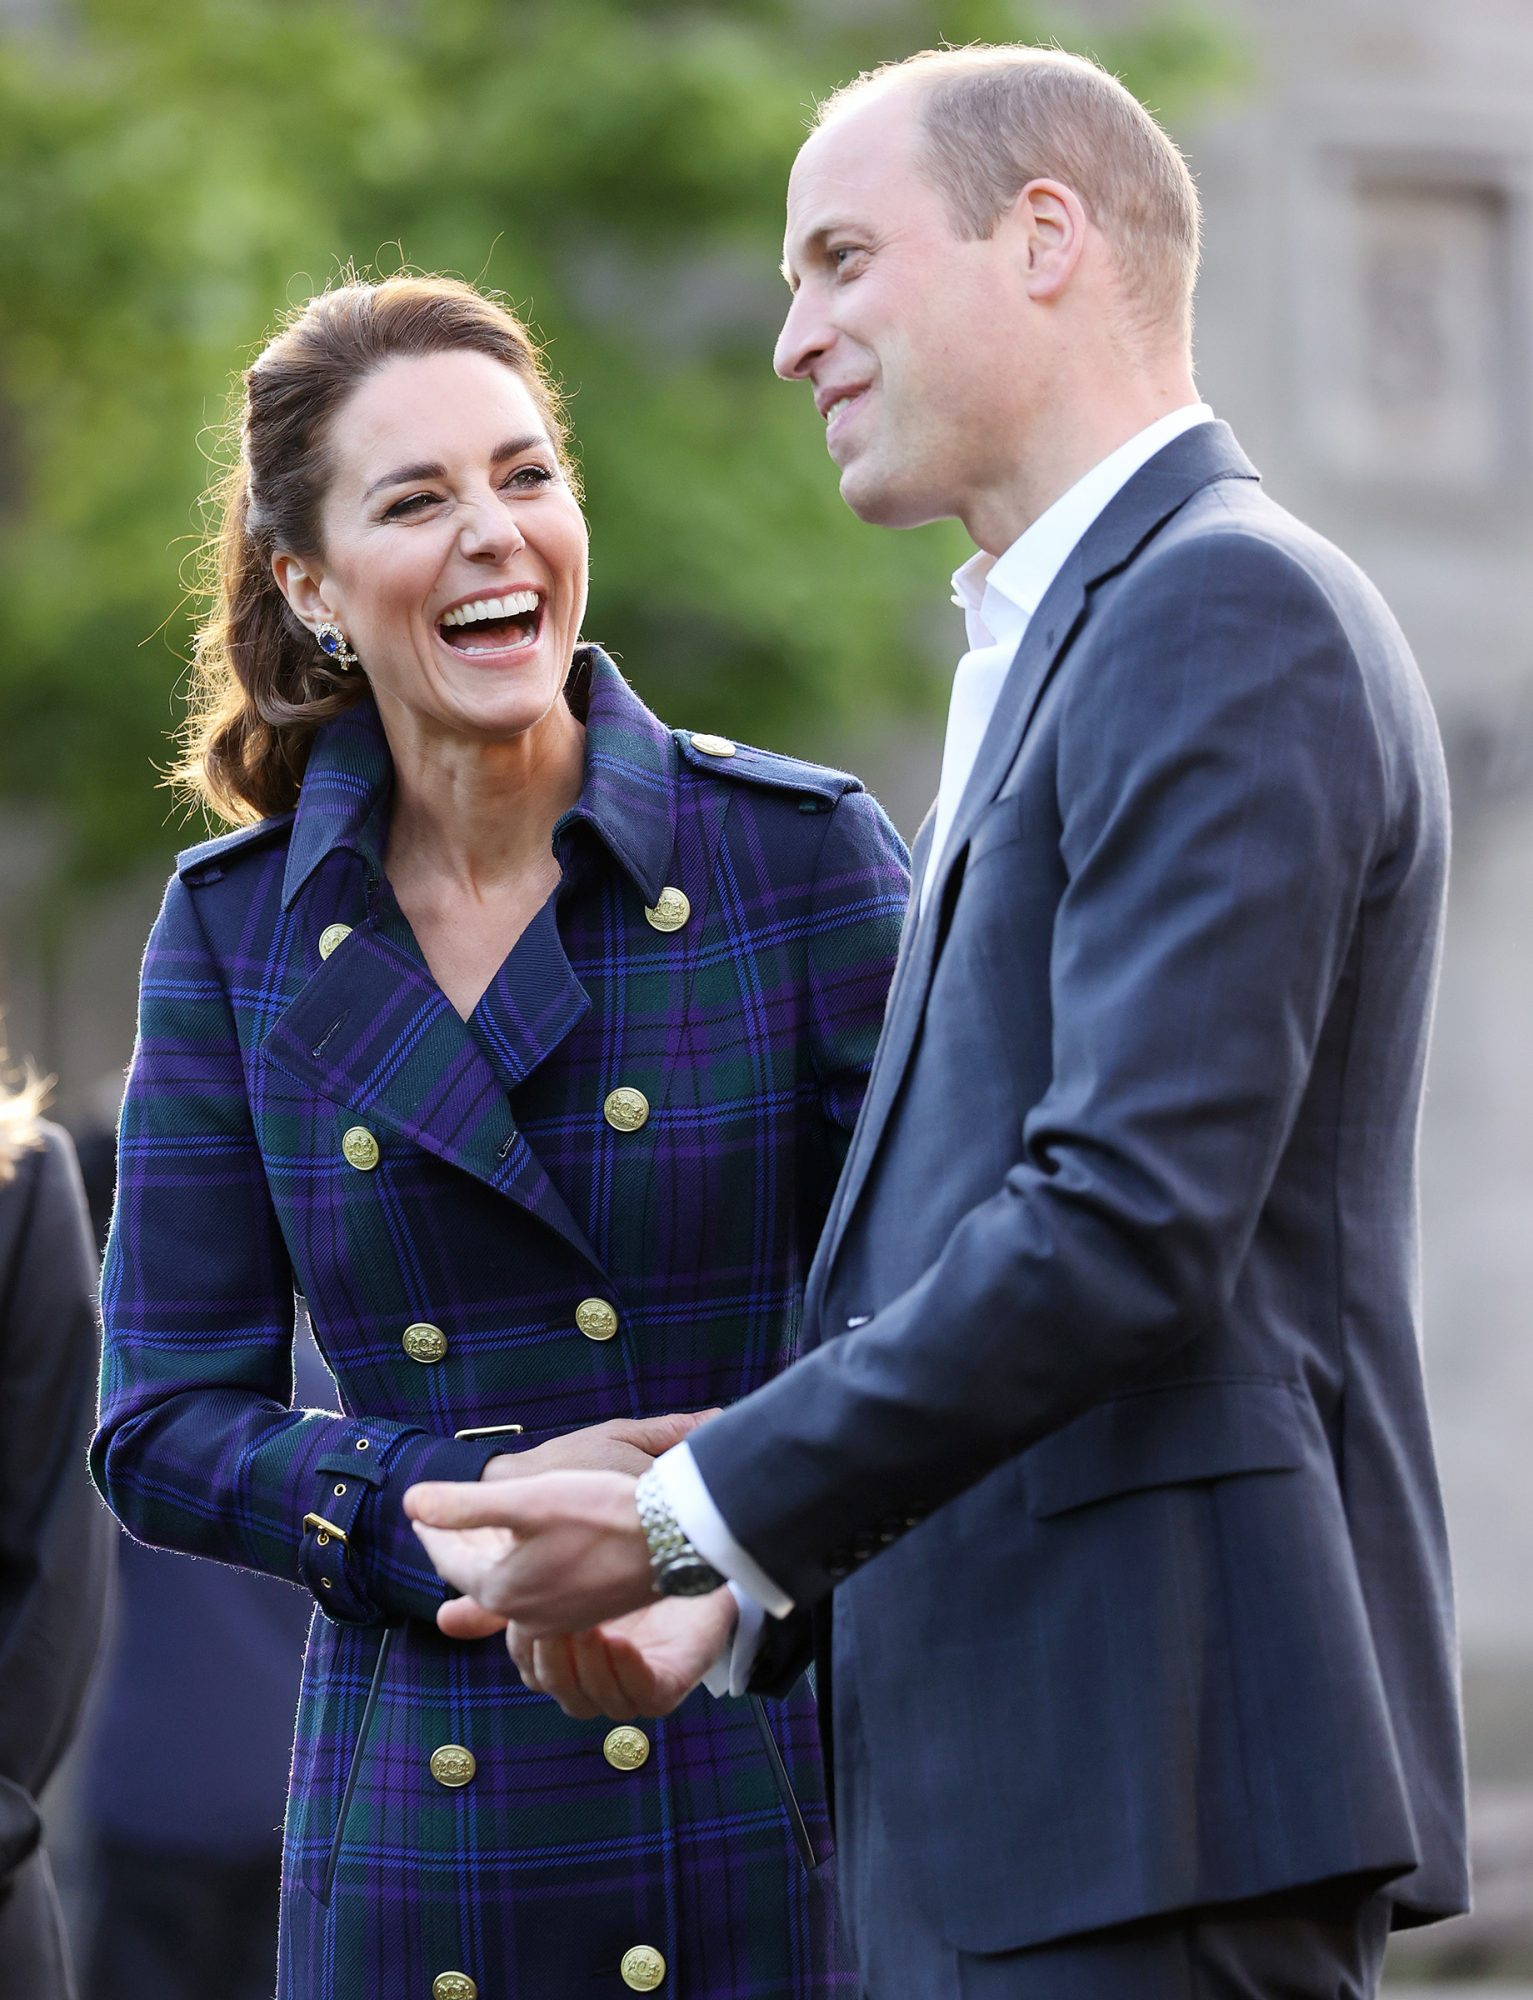 Prince William, Duke of Cambridge and Catherine, Duchess of Cambridge arrive to host NHS Charities Together and NHS staff at a unique drive-in cinema to watch a special screening of Disney's Cruella at the Palace of Holyroodhouse on day six of their week-long visit to Scotland on May 26, 2021 in Edinburgh, Scotland